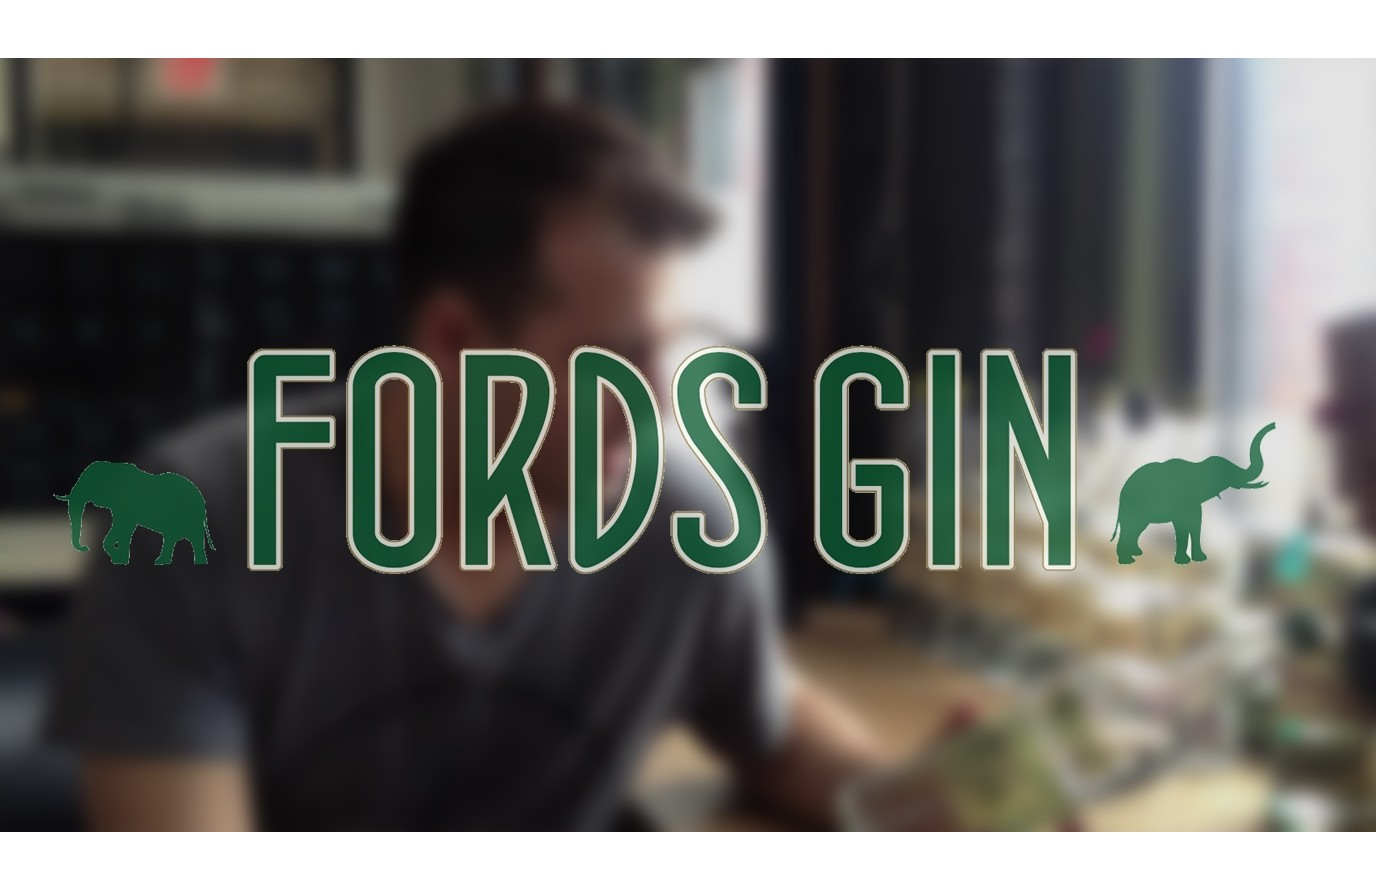 Simon Ford speaks on Fords Gin